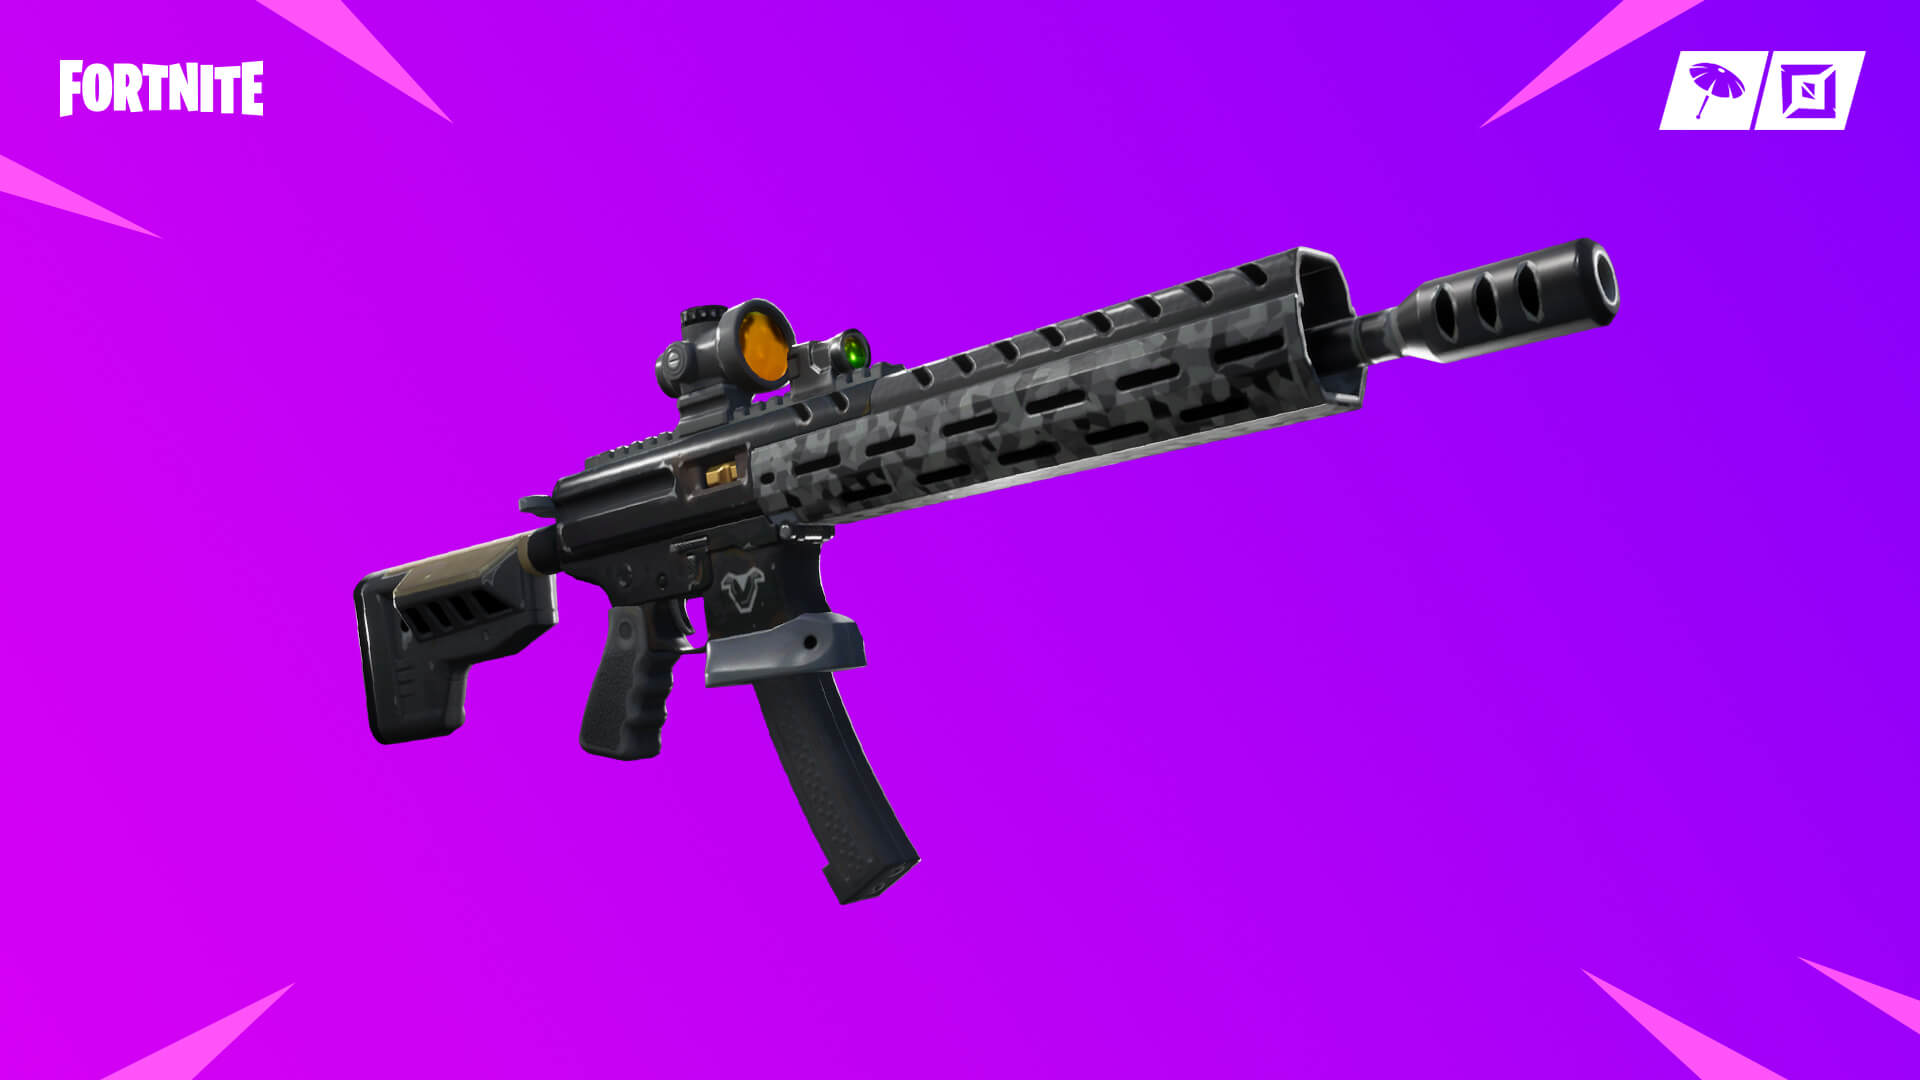 Fortnite 9.01 is here and there's a new tactical assault rifle weapon in the game